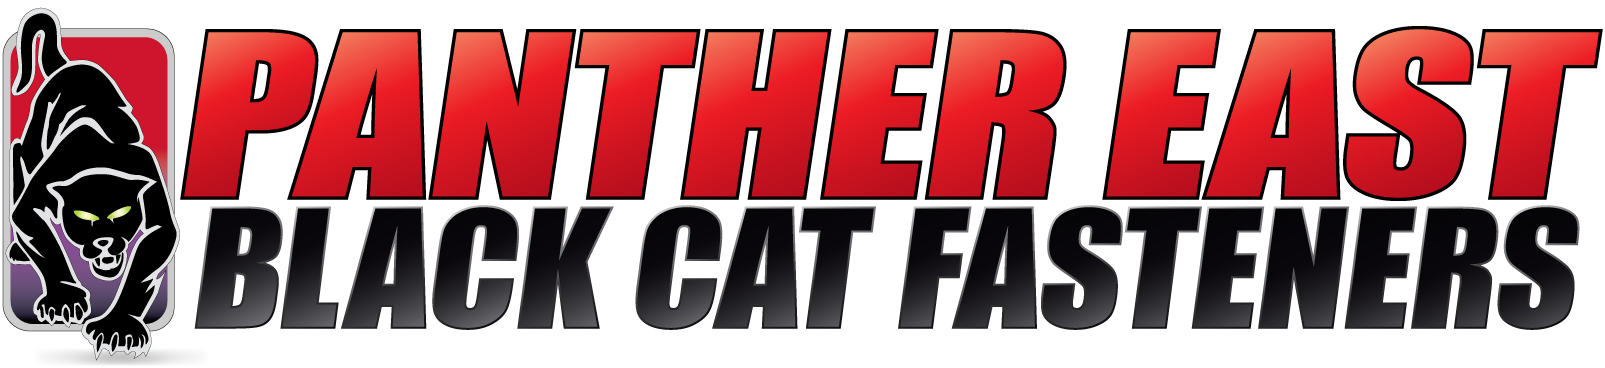 Panther East & Black Cat Fasteners Roofing & Construction Tools, Fasteners, Equipment, Safety and Material Supplies